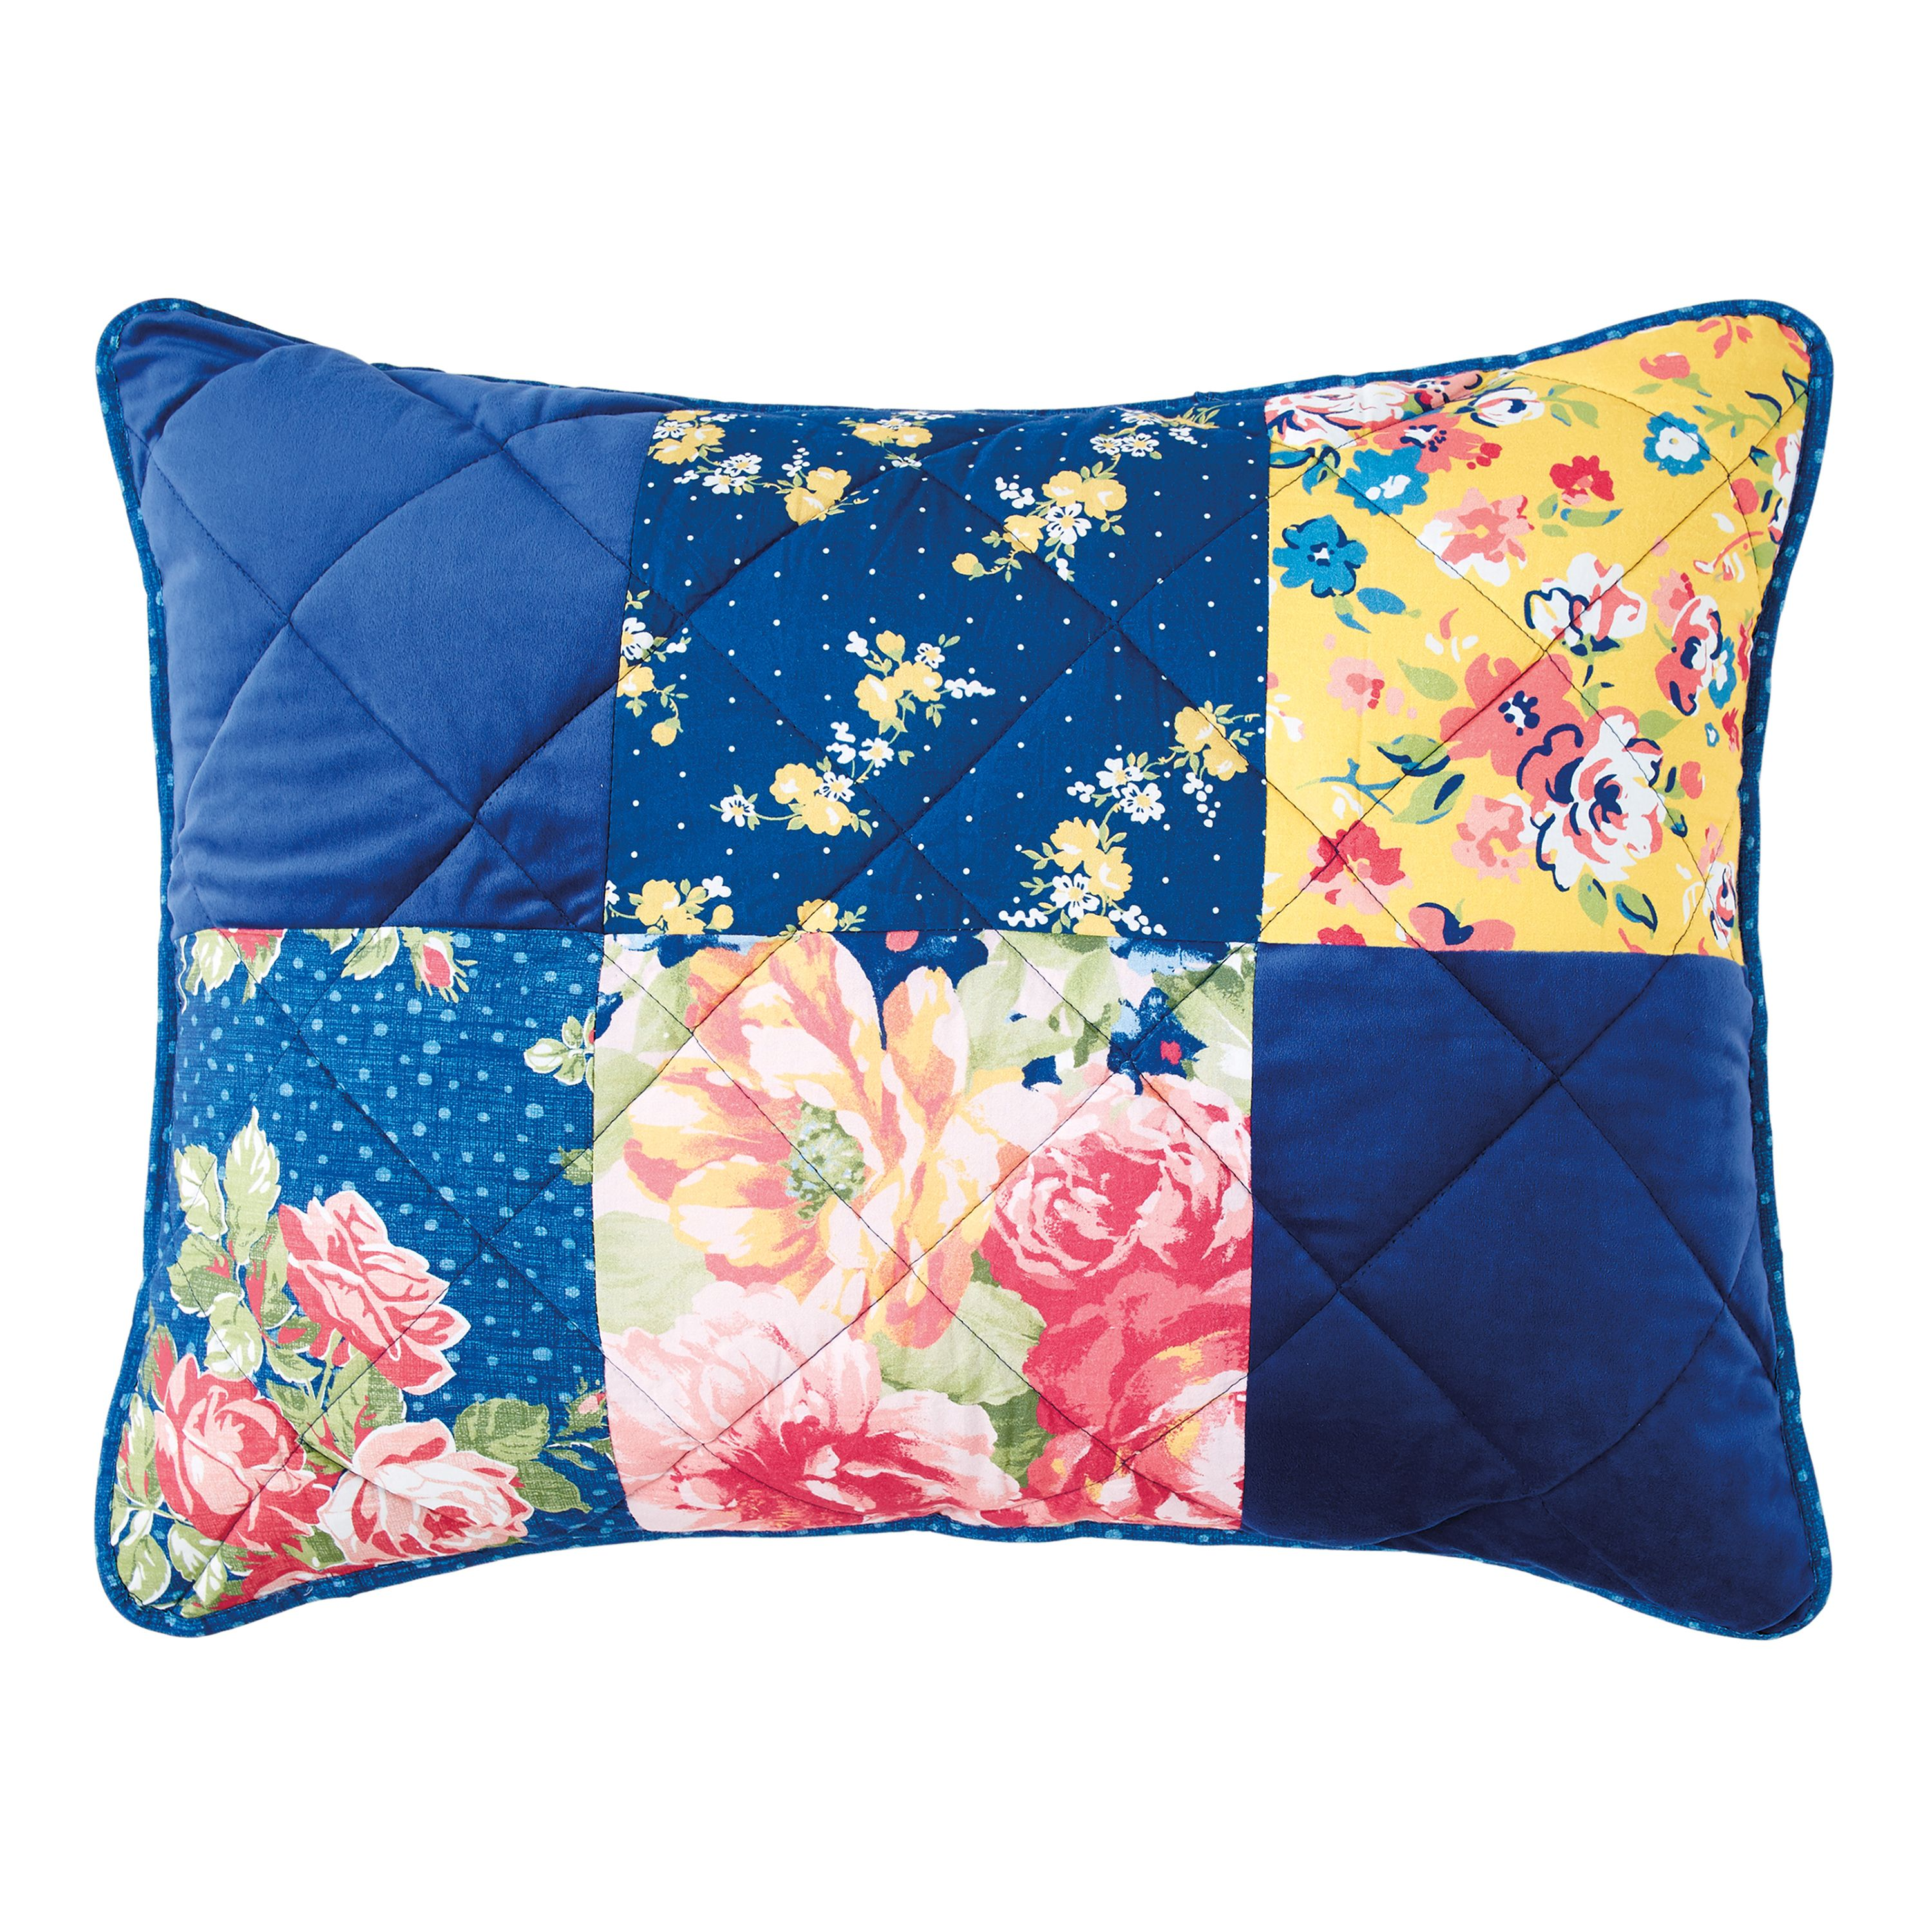 The Pioneer Woman Paige Patchwork Sham Set